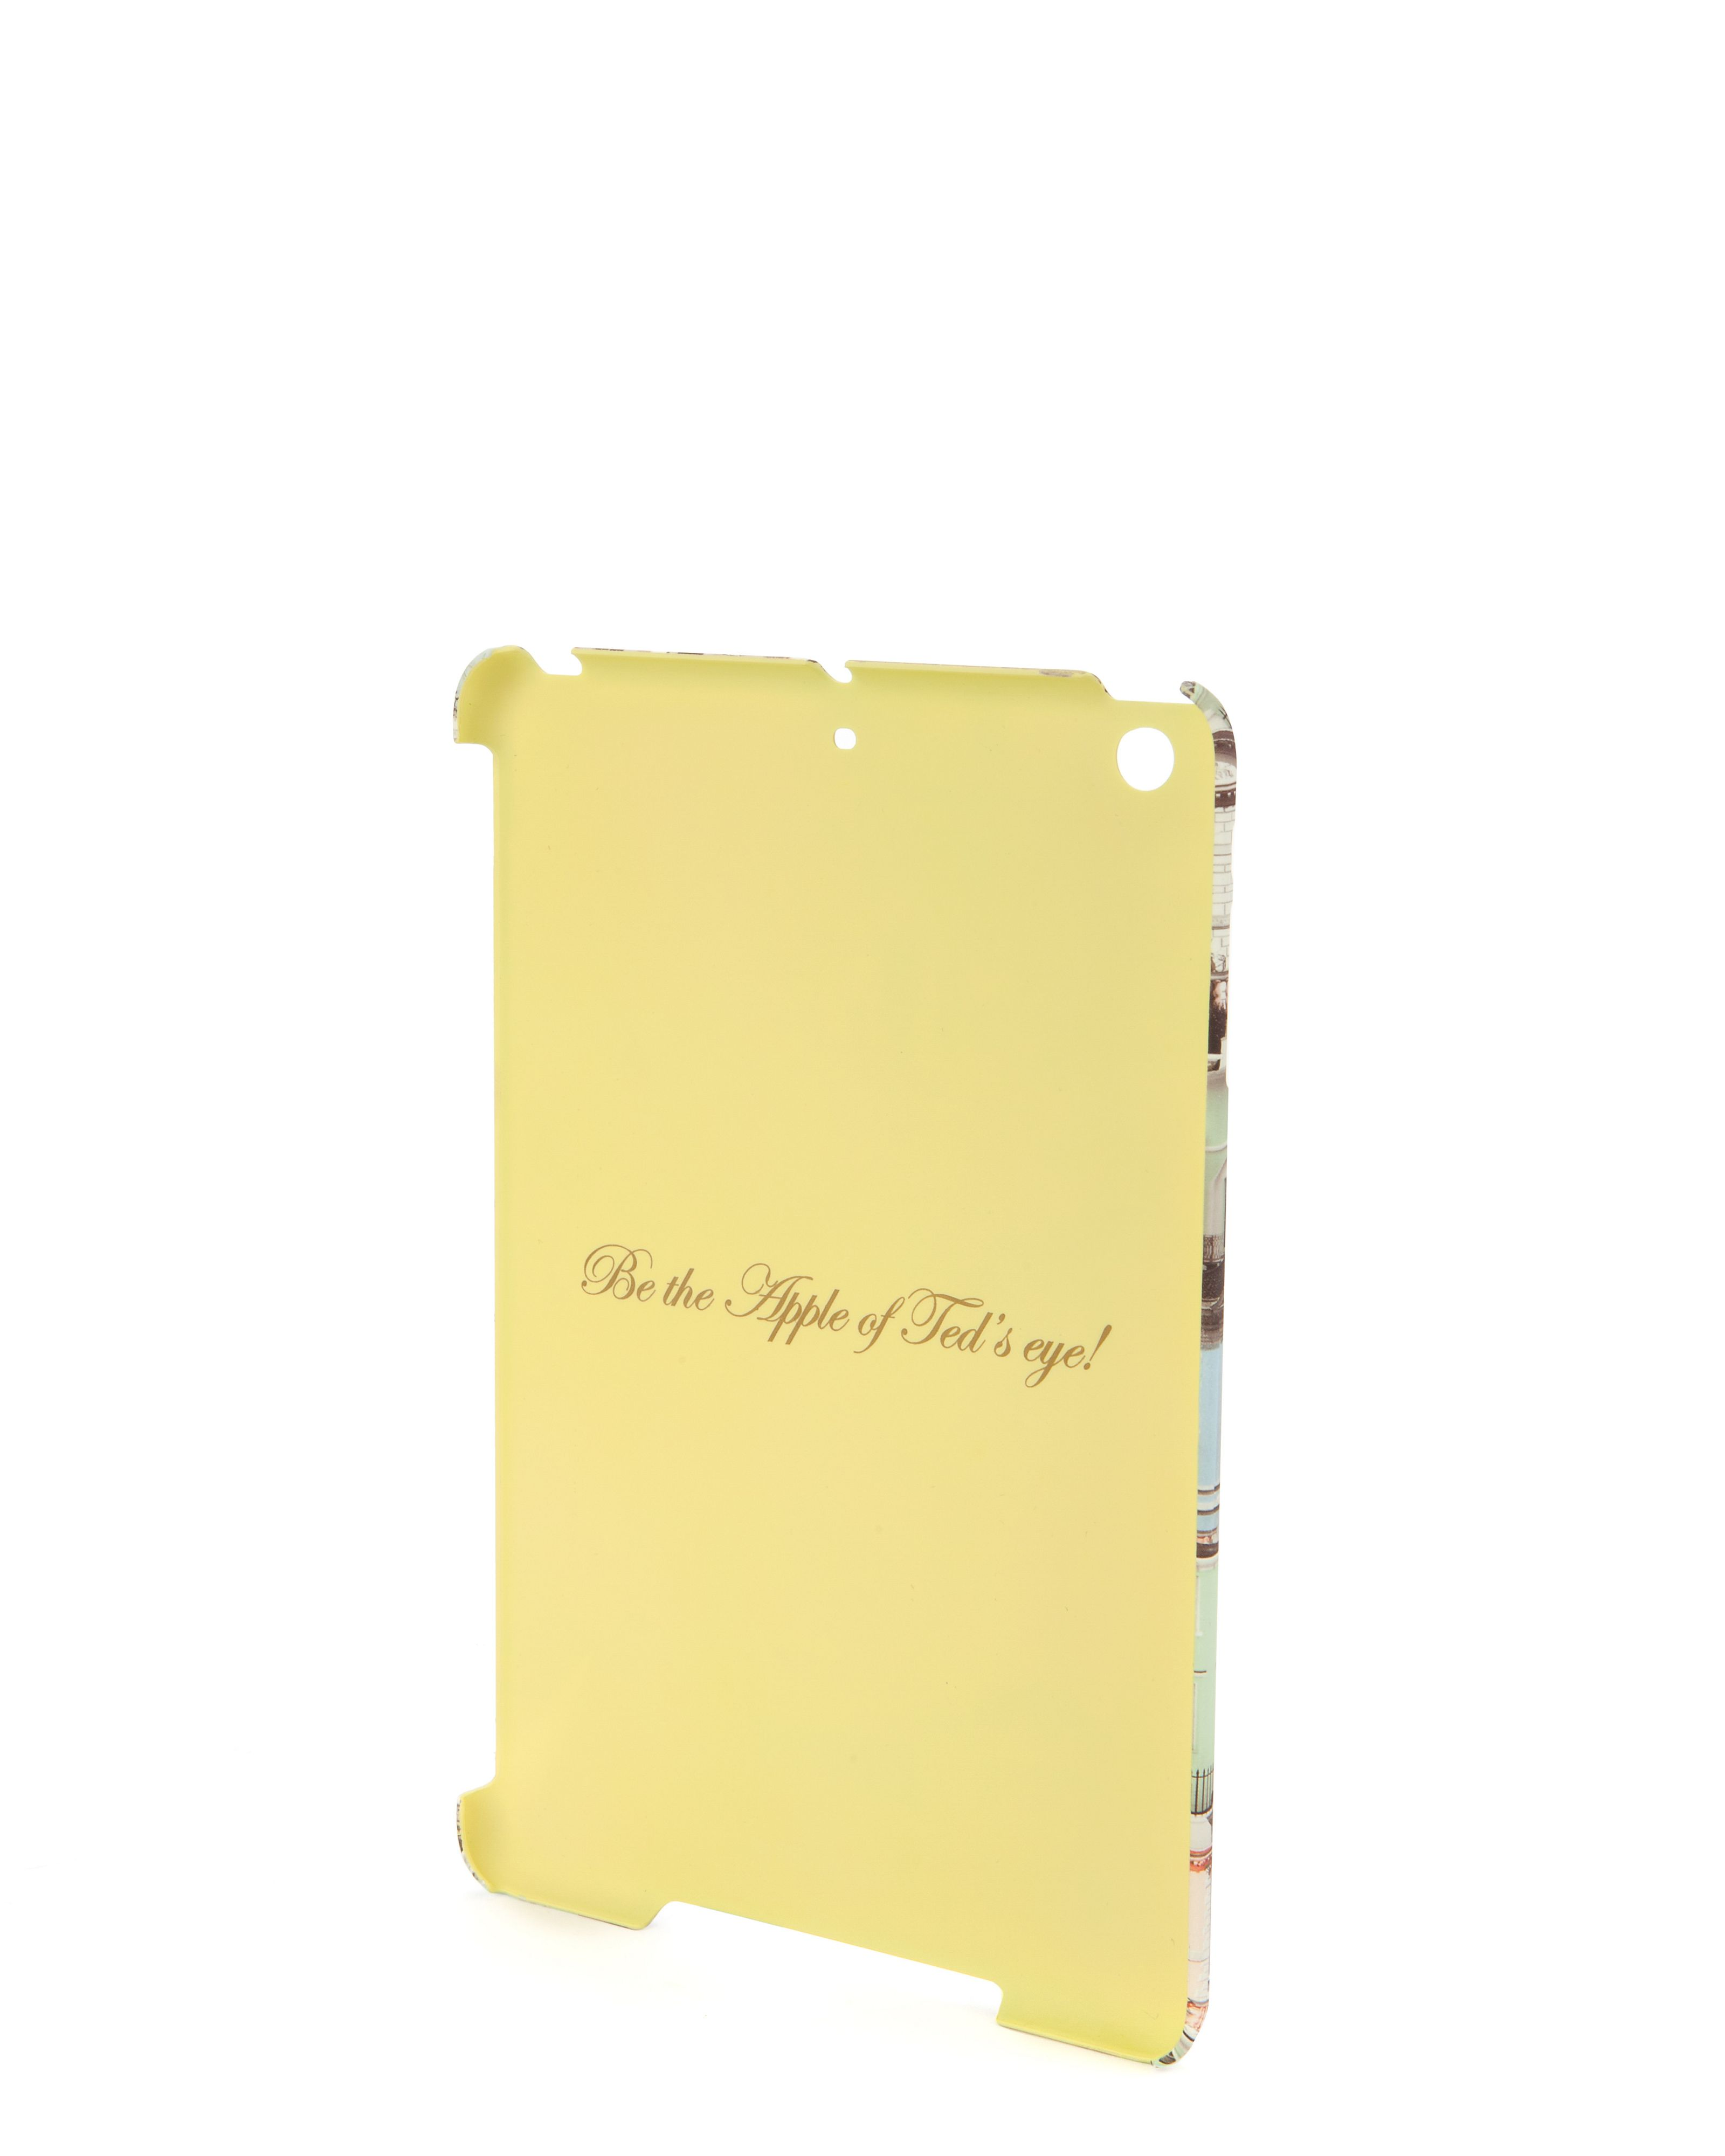 Kicki regency houses ipad mini case